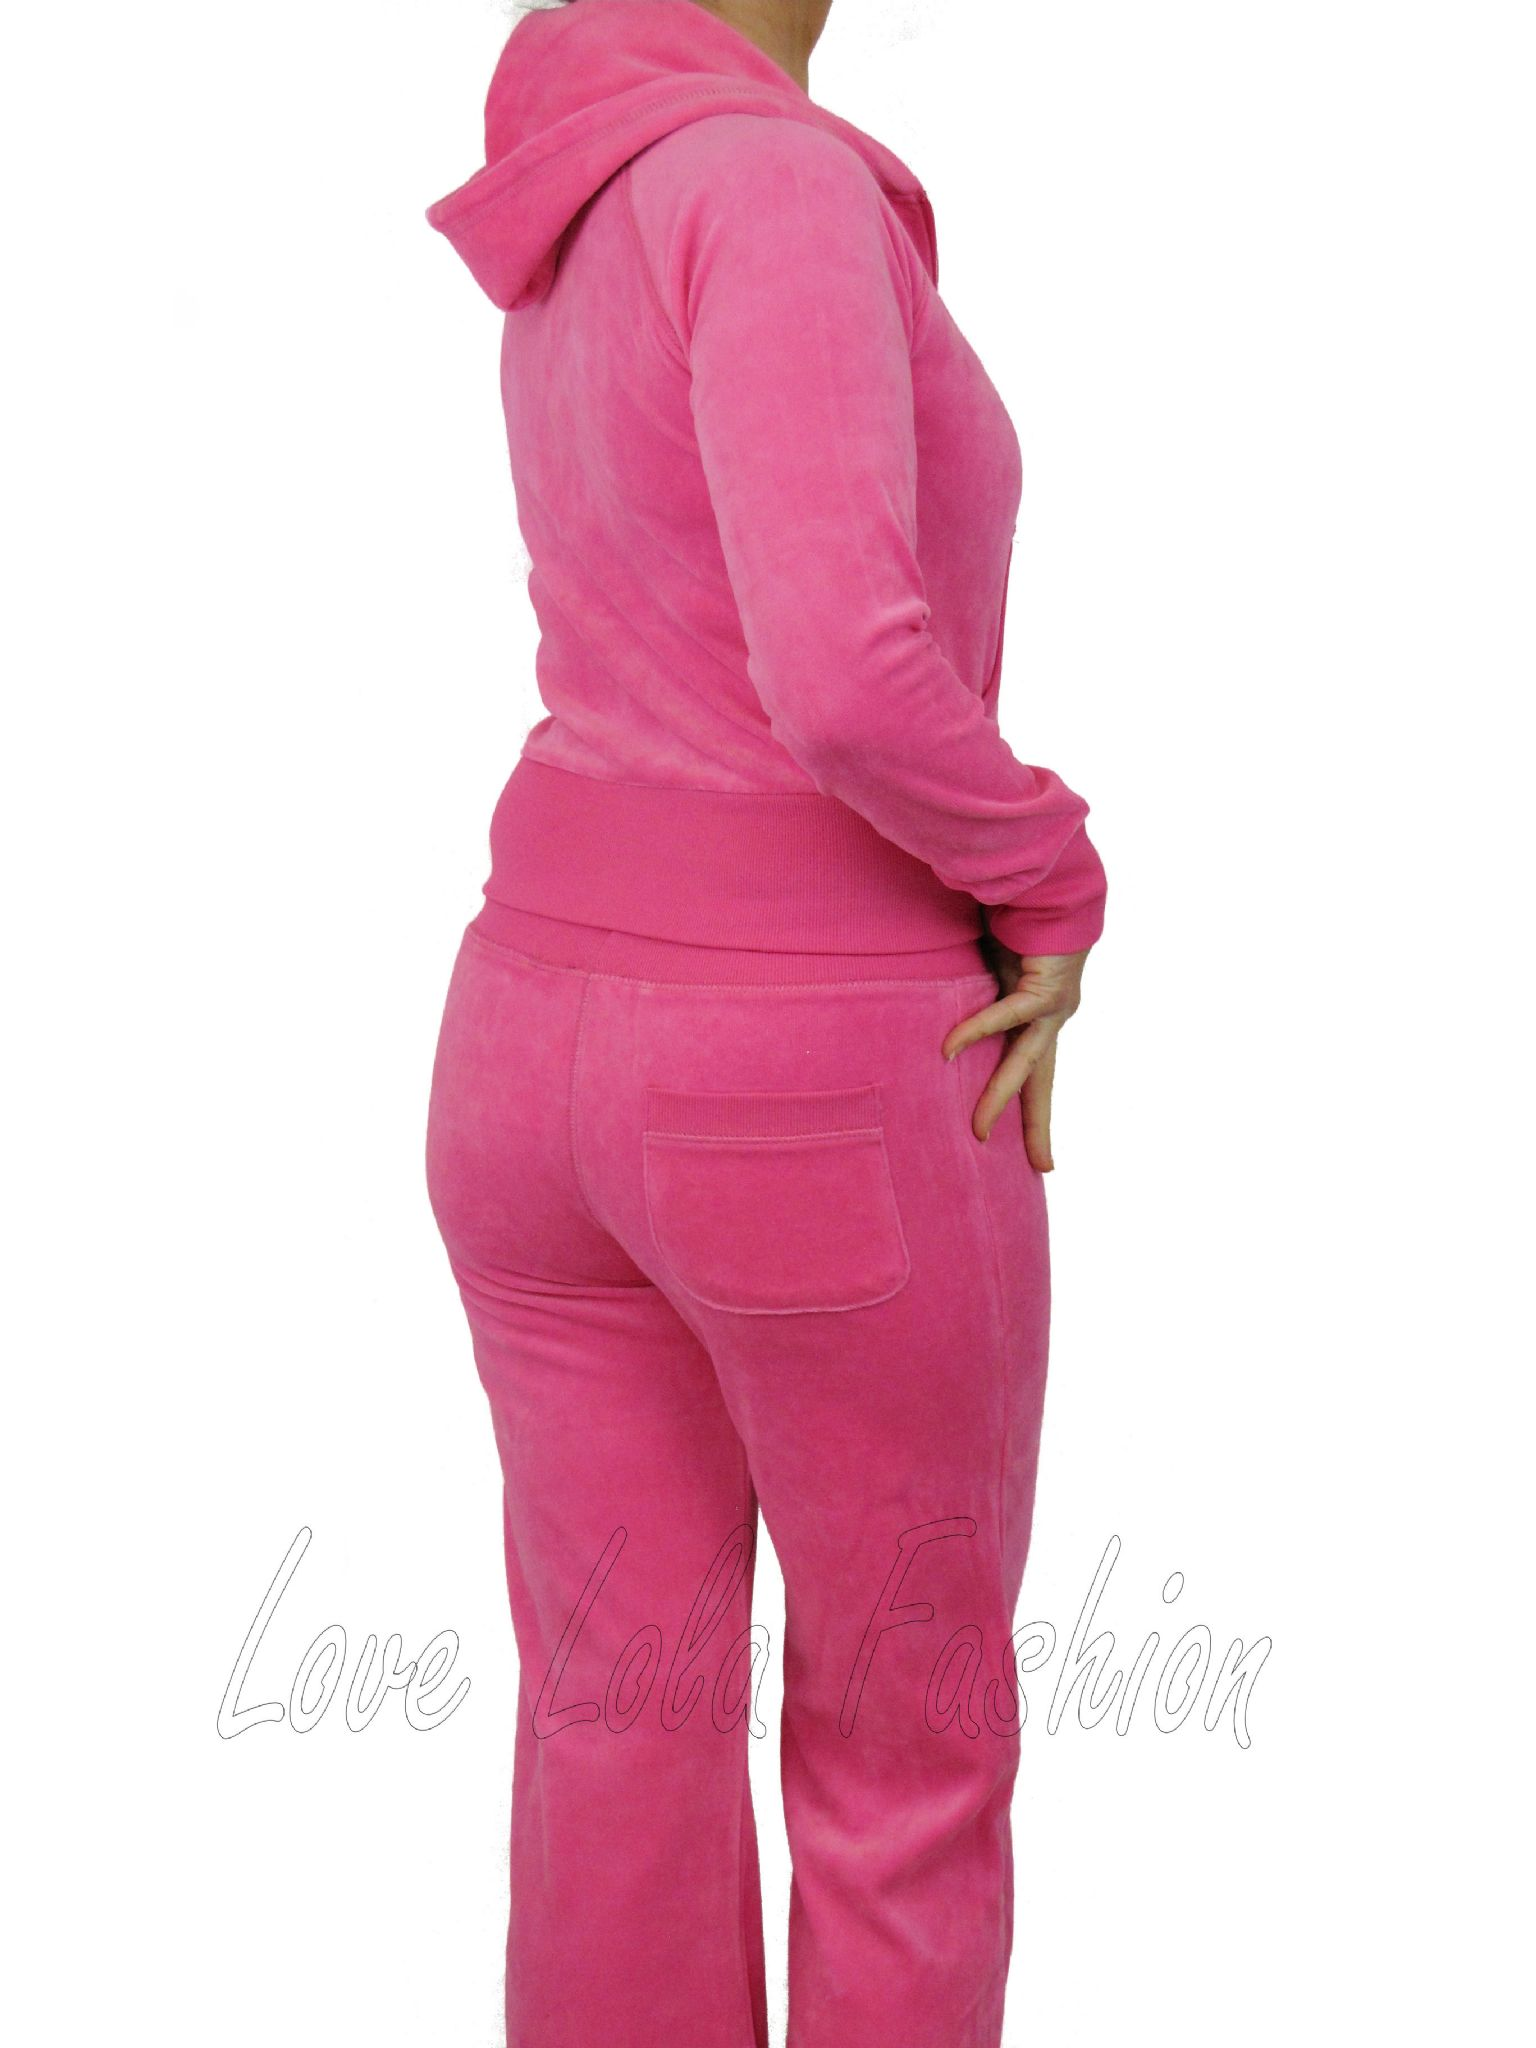 Love Lola Womens Velour Tracksuits Hot Pink